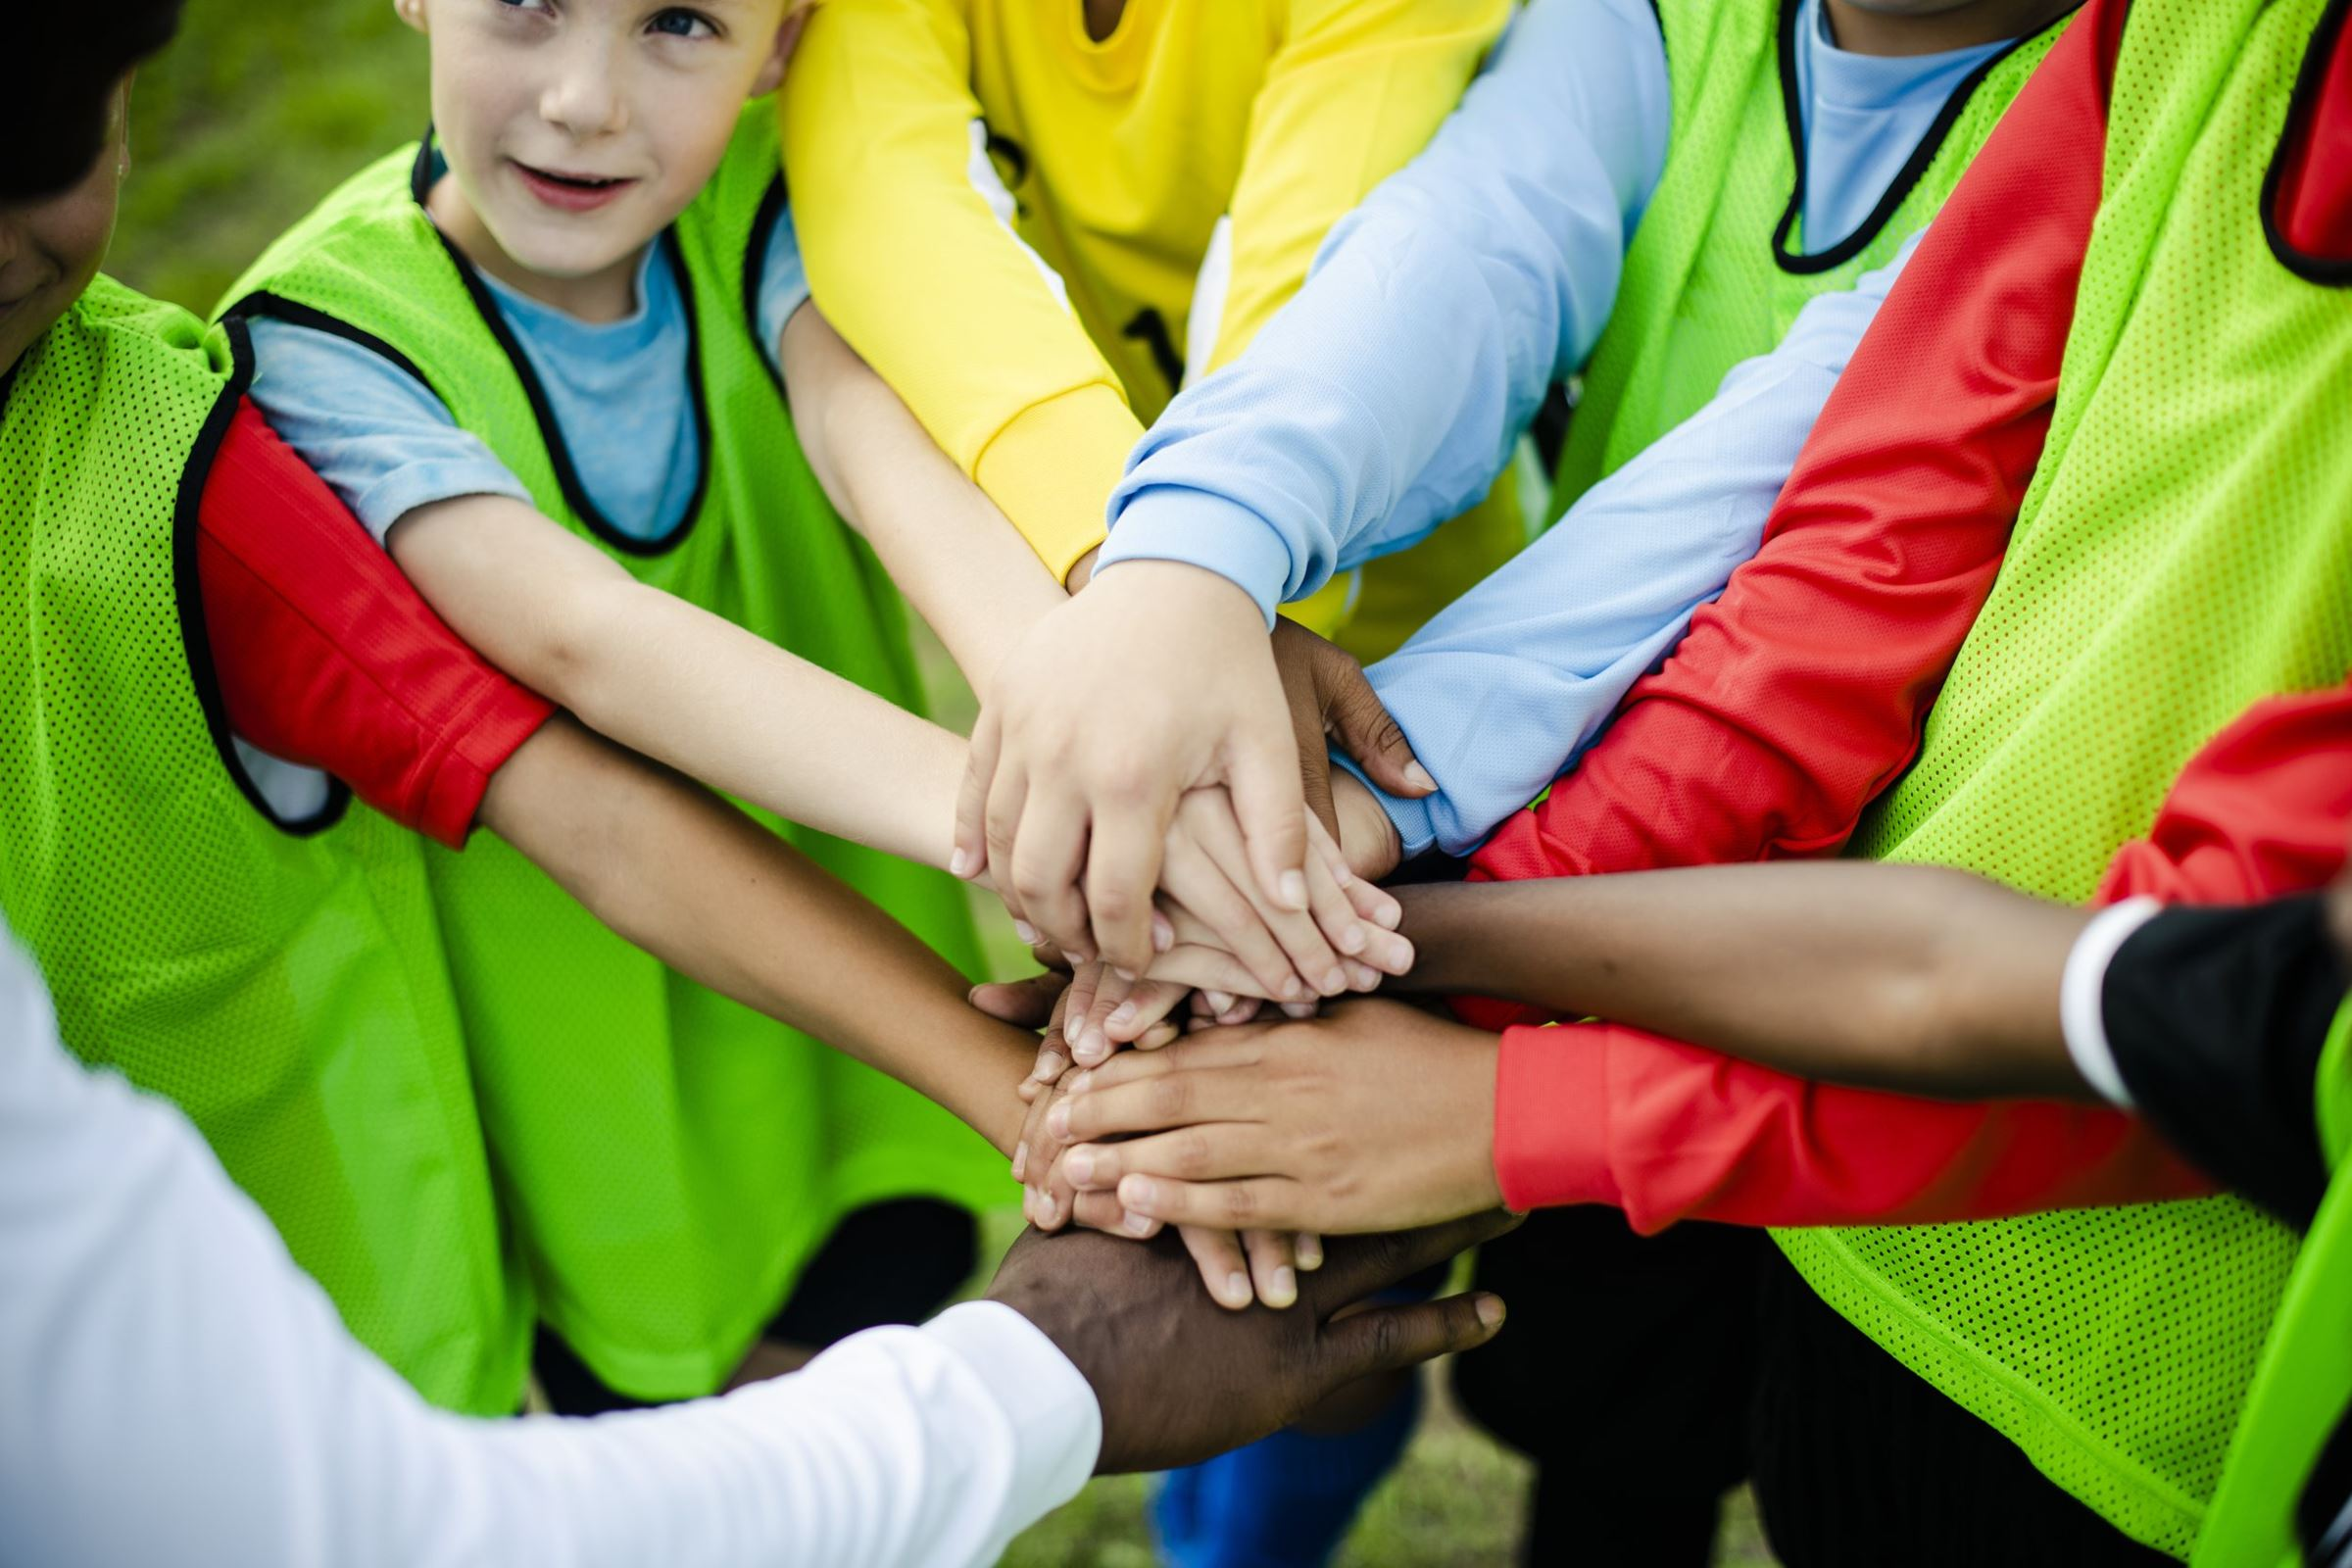 Junior football team stacking hands before a match ((c) Rawpixel.com – stock.adobe.com)